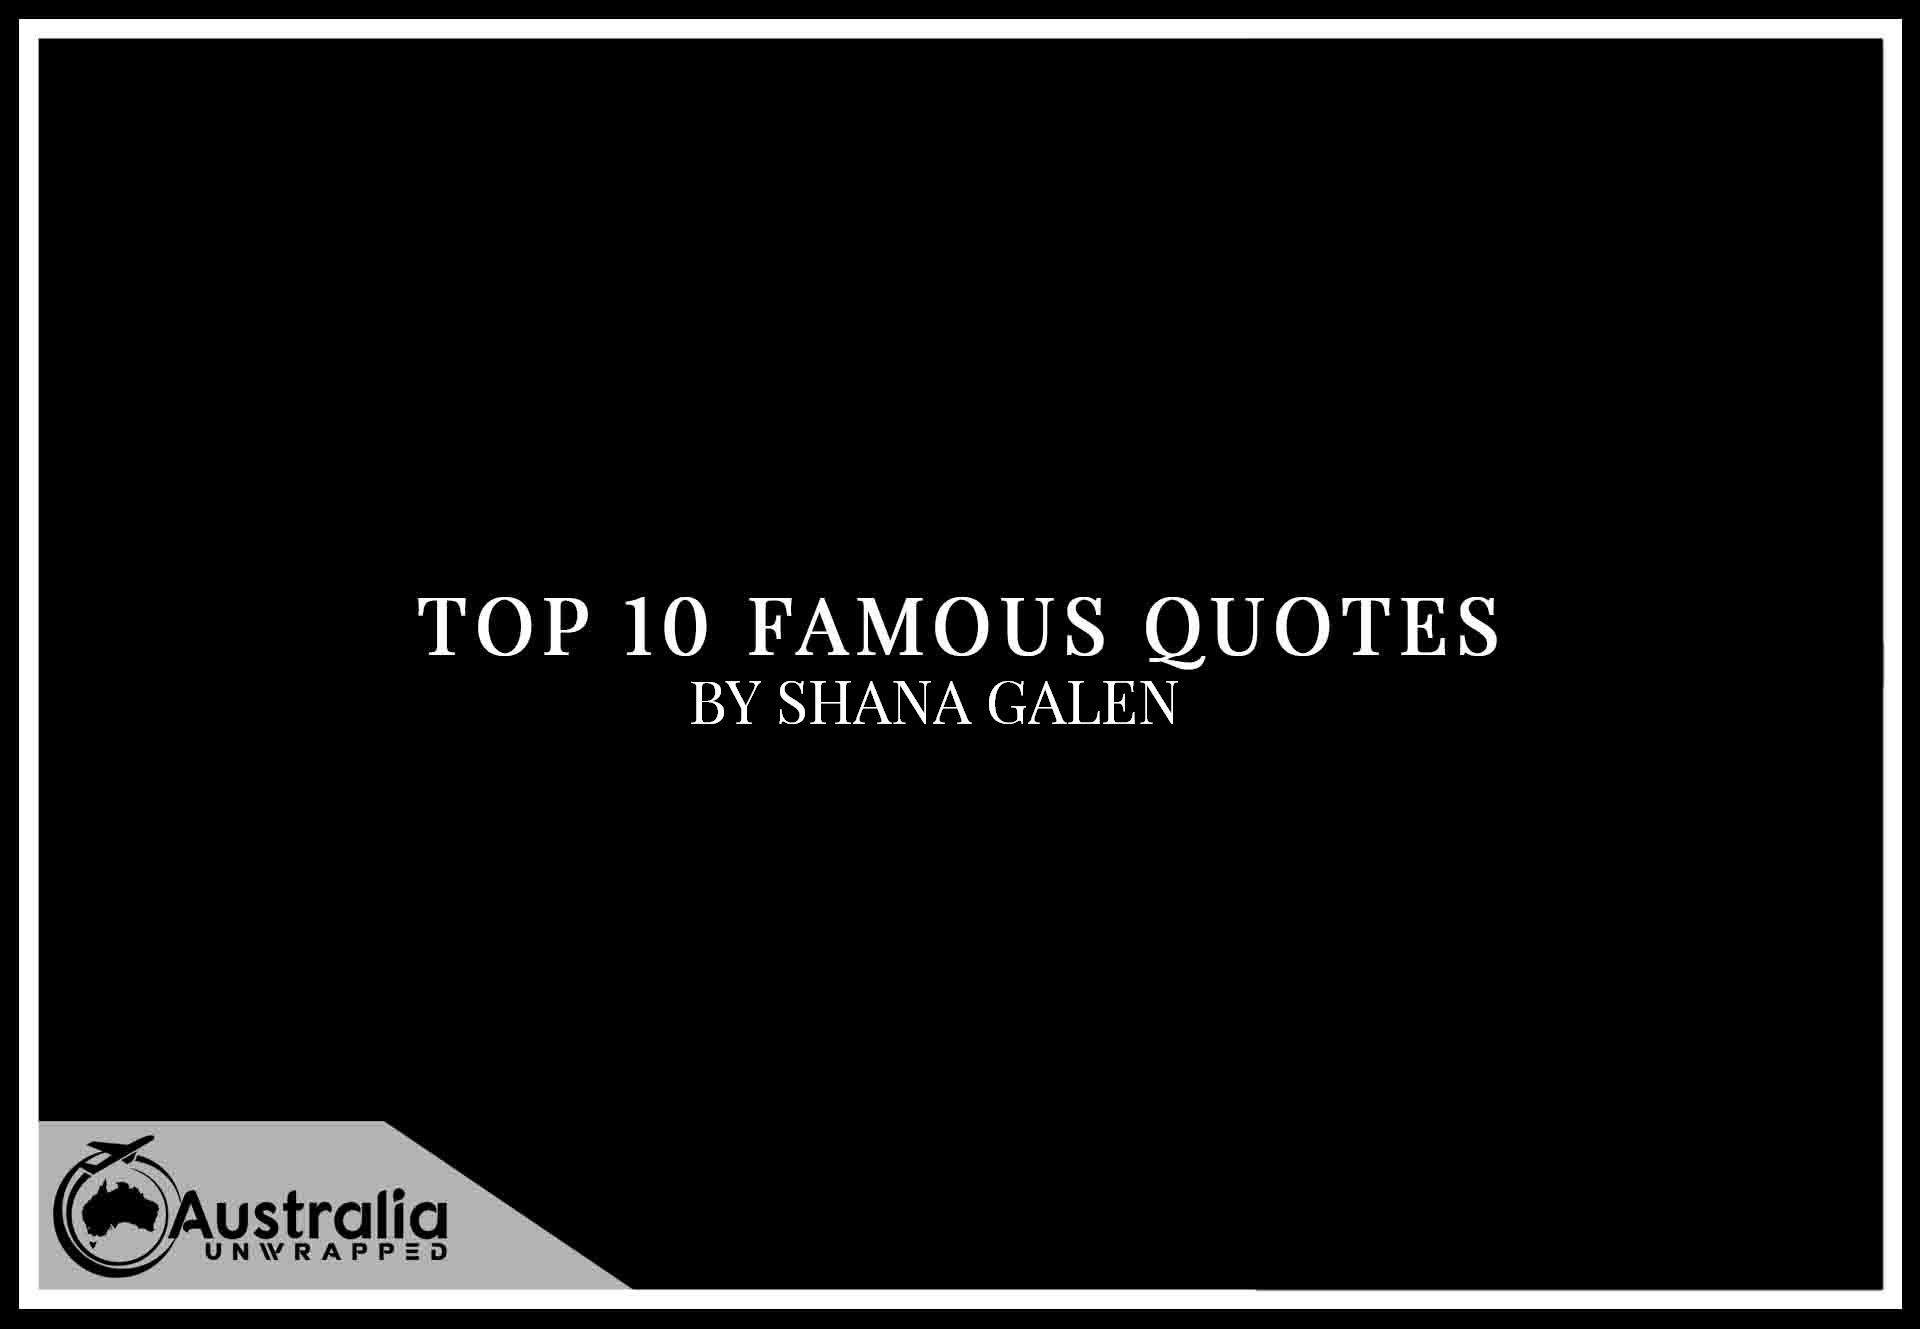 Top 10 Famous Quotes by Author Shana Galen